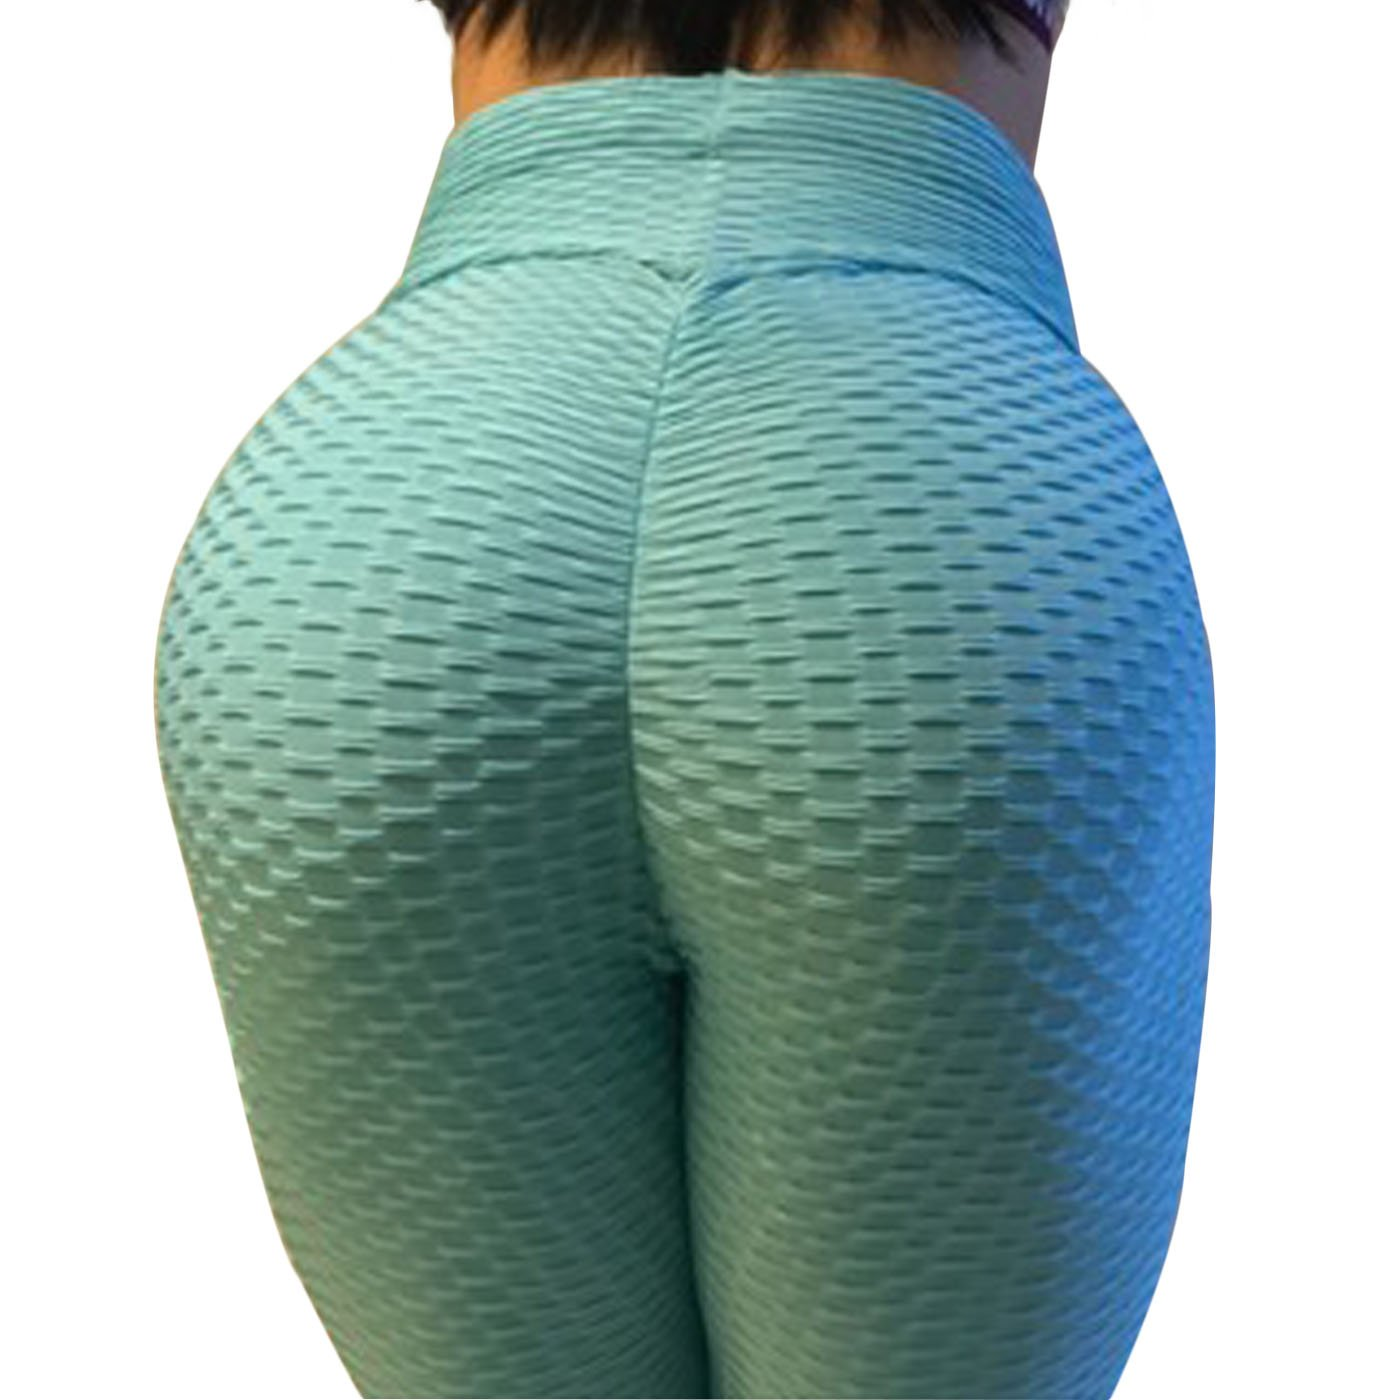 CPHMP Women's High Waist Ruched Butt Lifting Slimming Leggings Textured Stretchy Skinny Yoga Pants Thights (M, Blue)